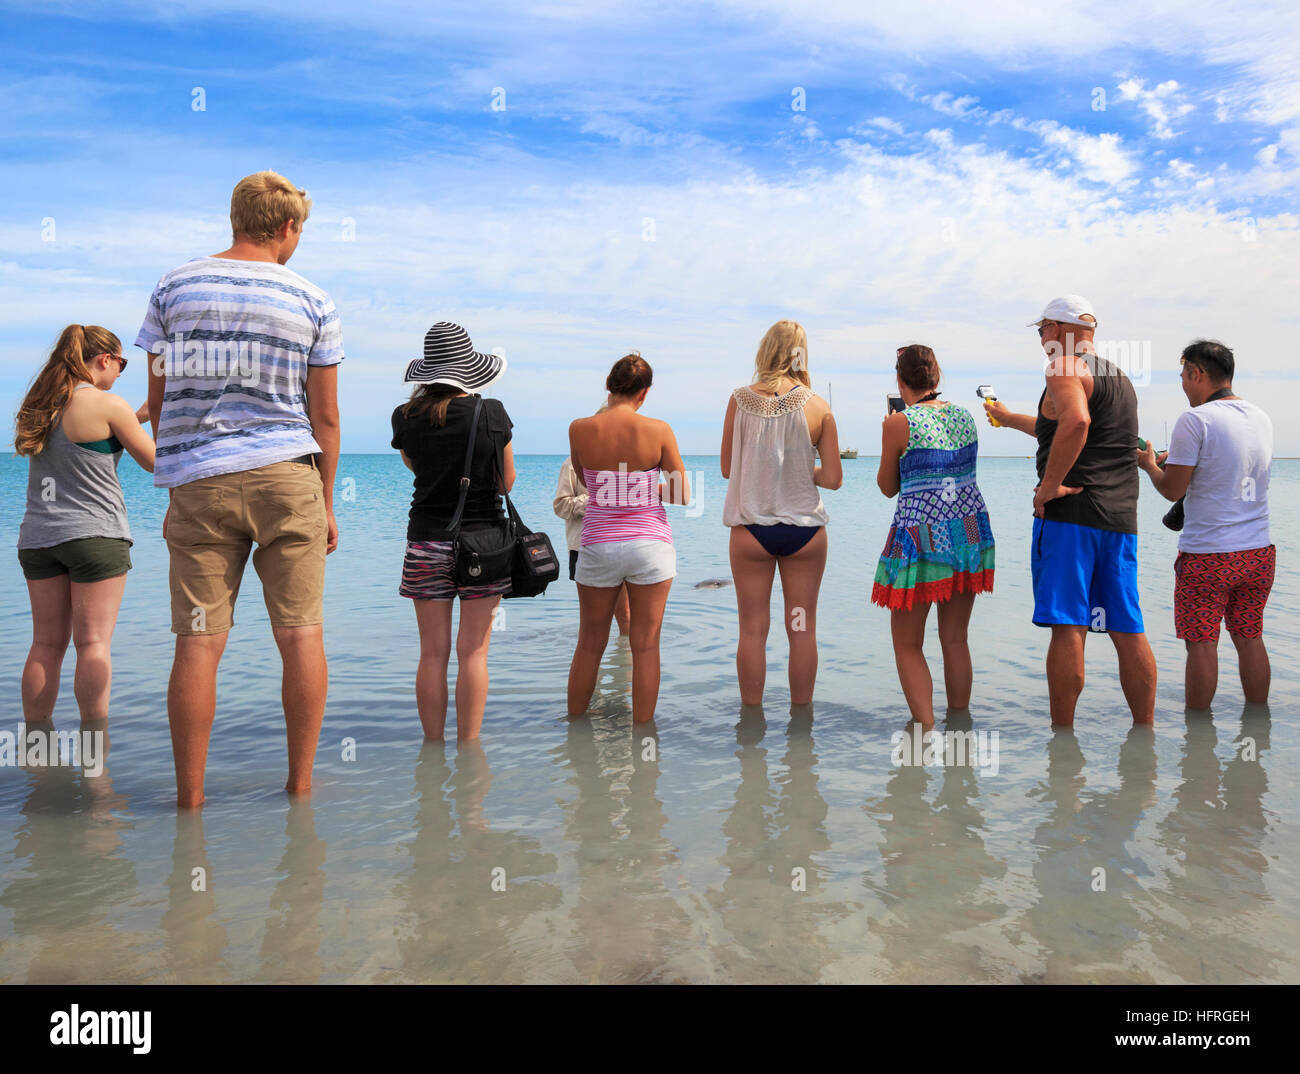 People lining the beach to view the dolphins at Monkey Mia. Western Australia - Stock Image